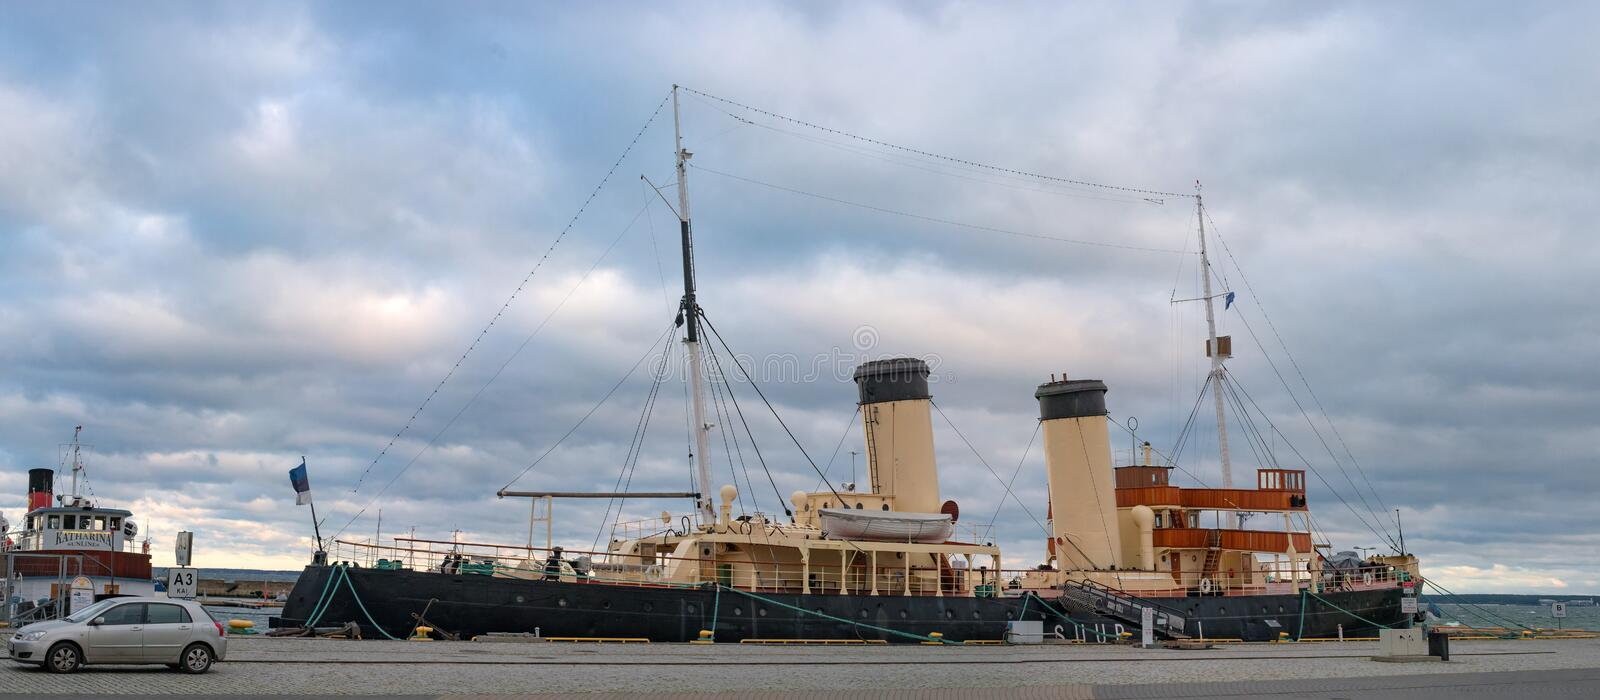 Tallinn, Estonia - November 18, 2018: Suur Toll icebreaker at the pier. The icebreaker steamer is part of the Tallinn. Maritime Museum and is based at the stock image